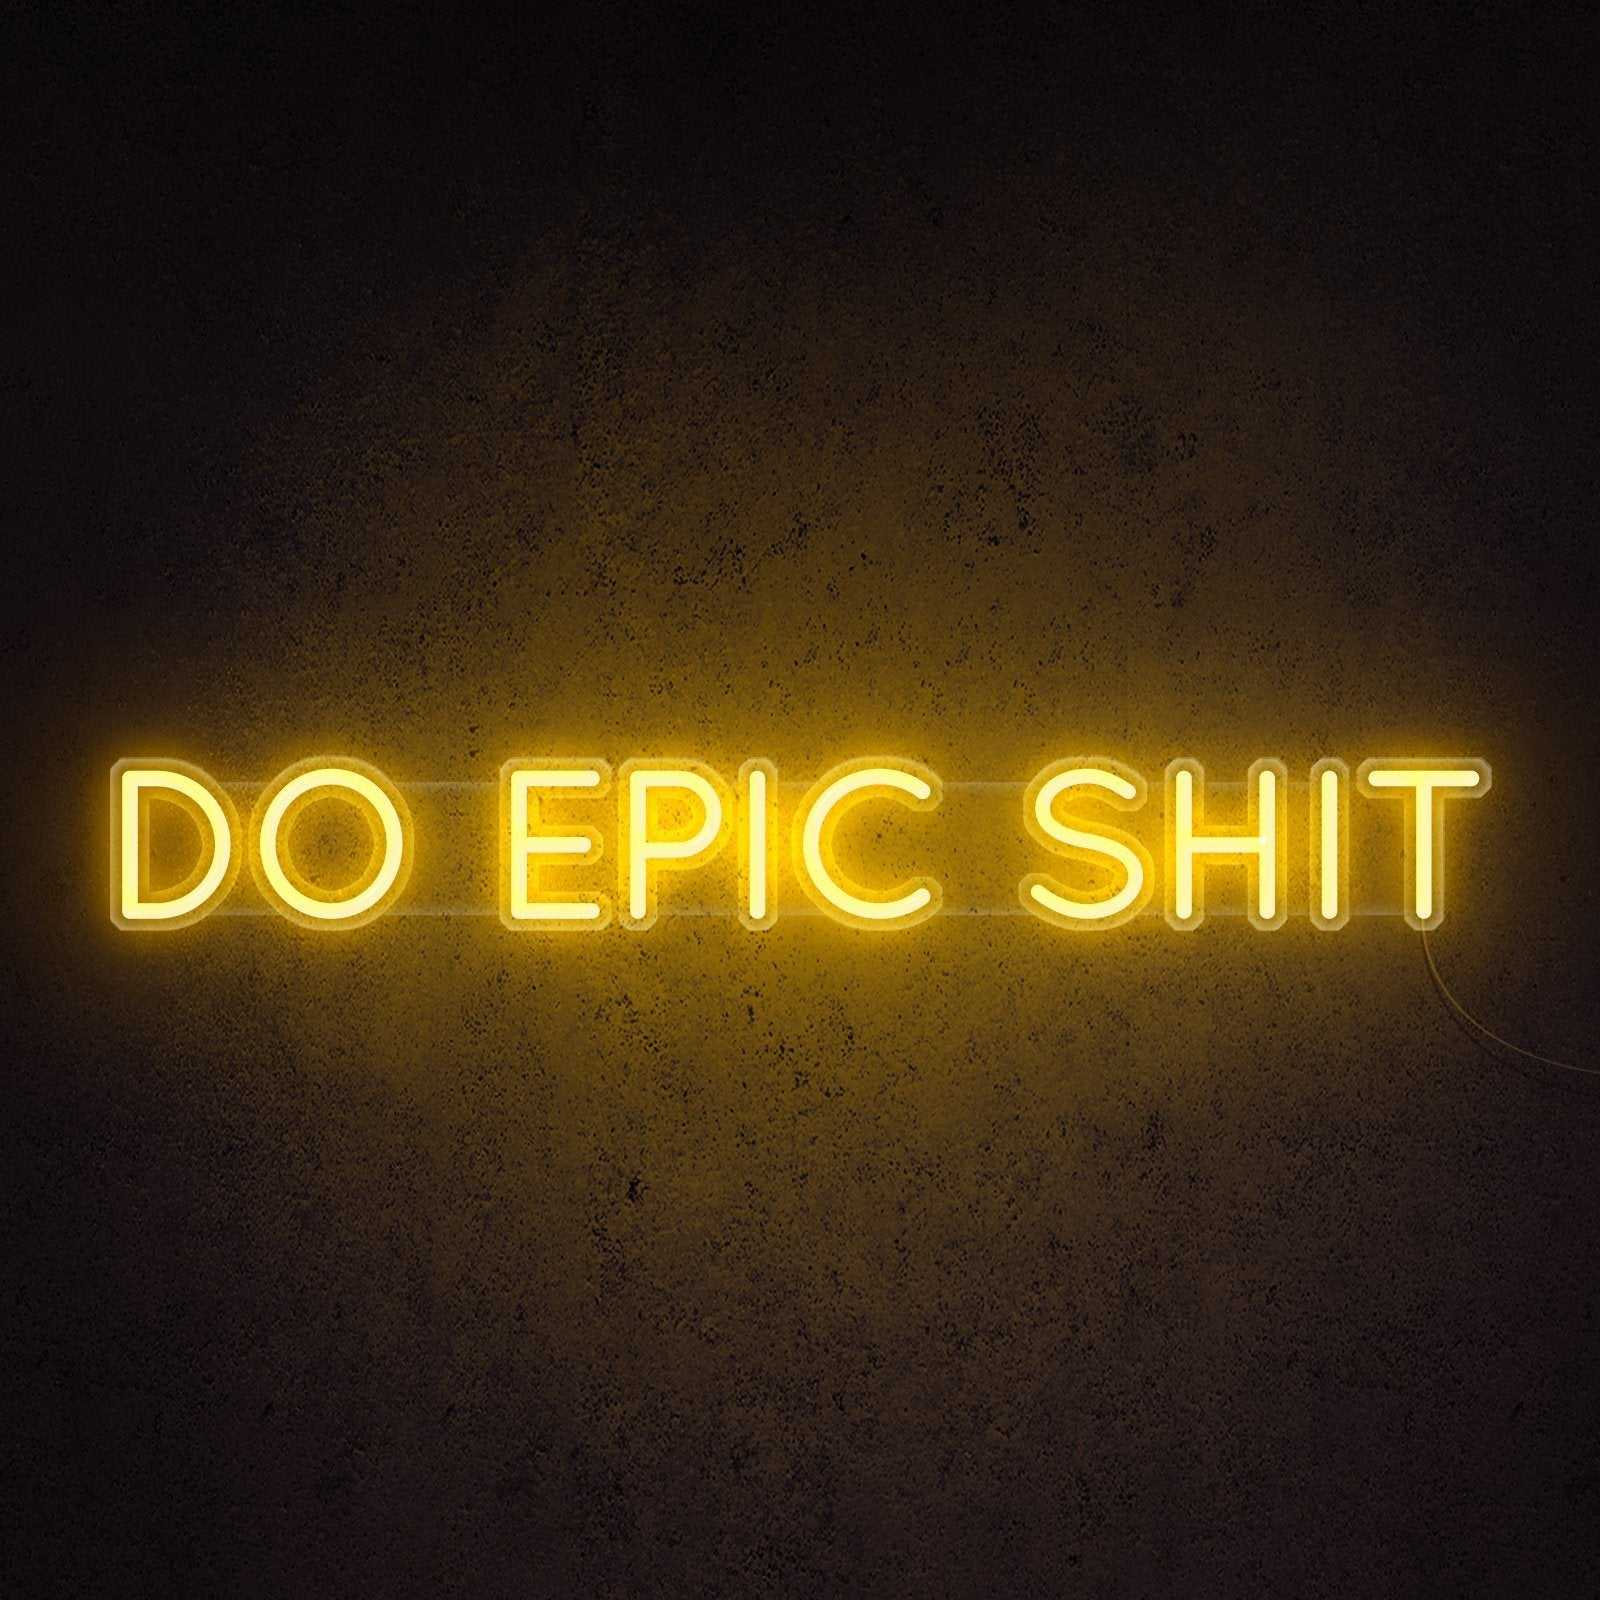 Do Epic Sh*t Neon Sign